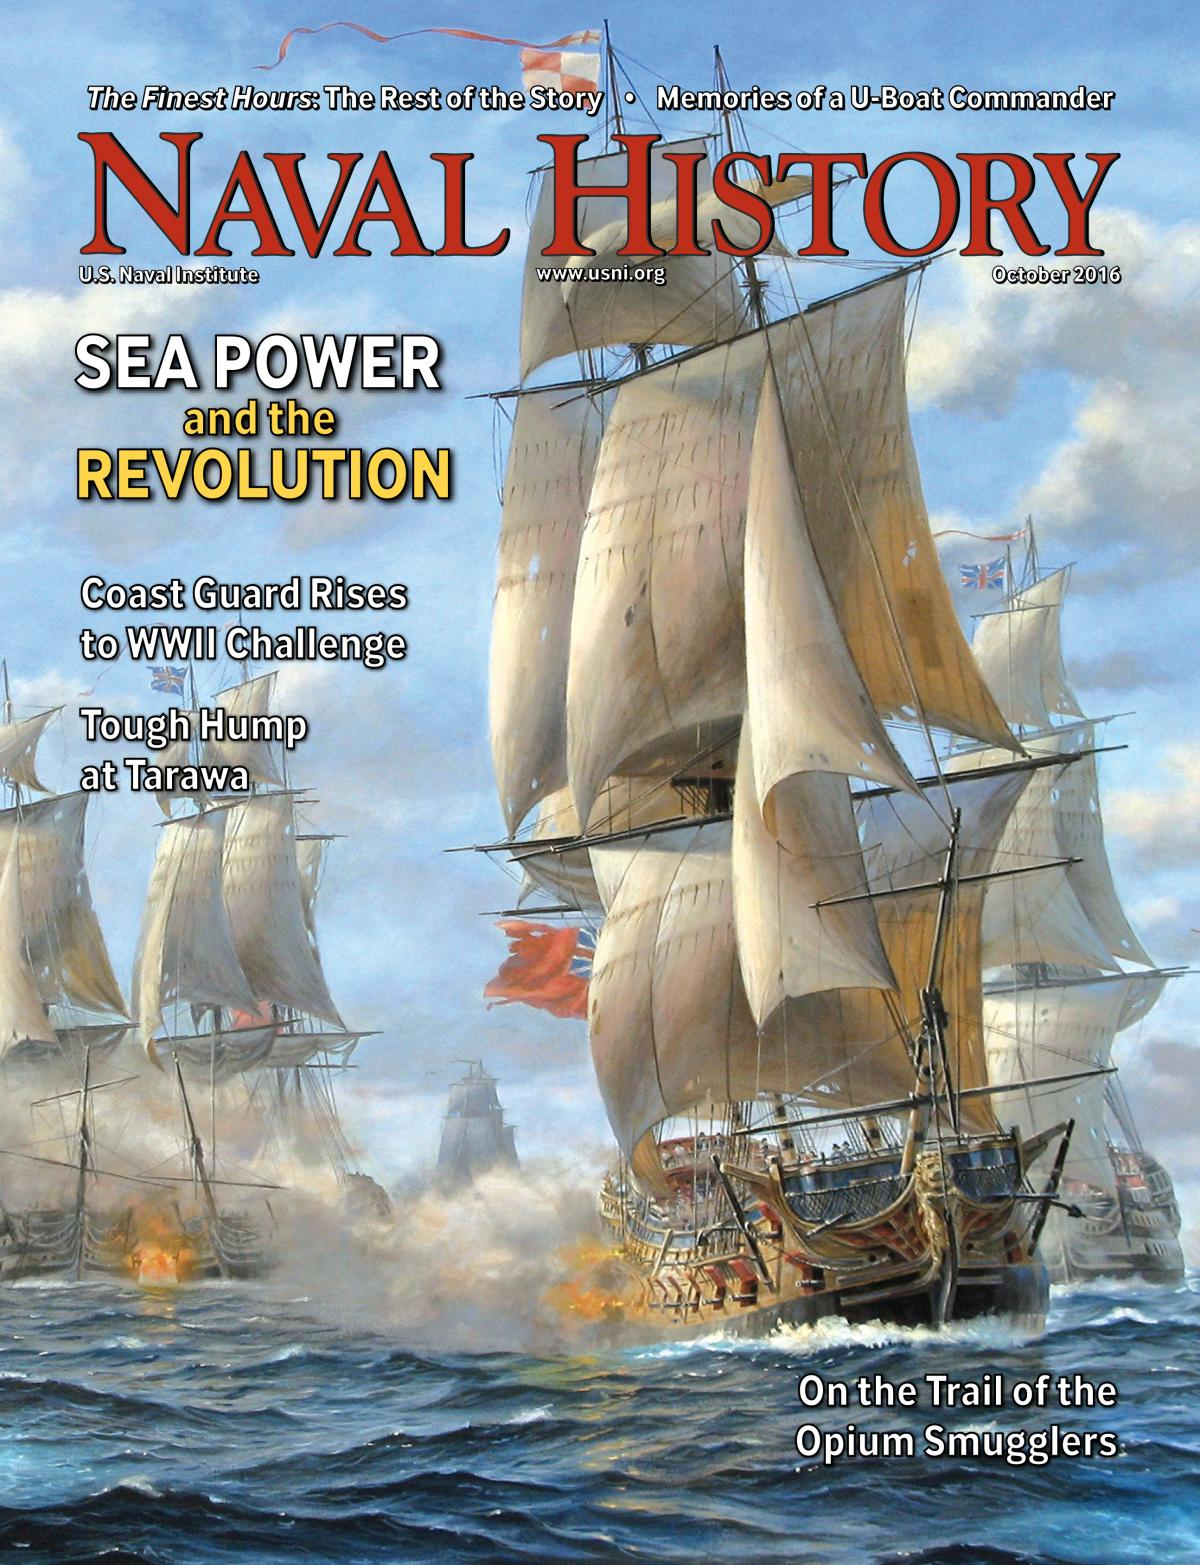 Naval History Magazine - October 2016 Volume 30, Number 5 Cover